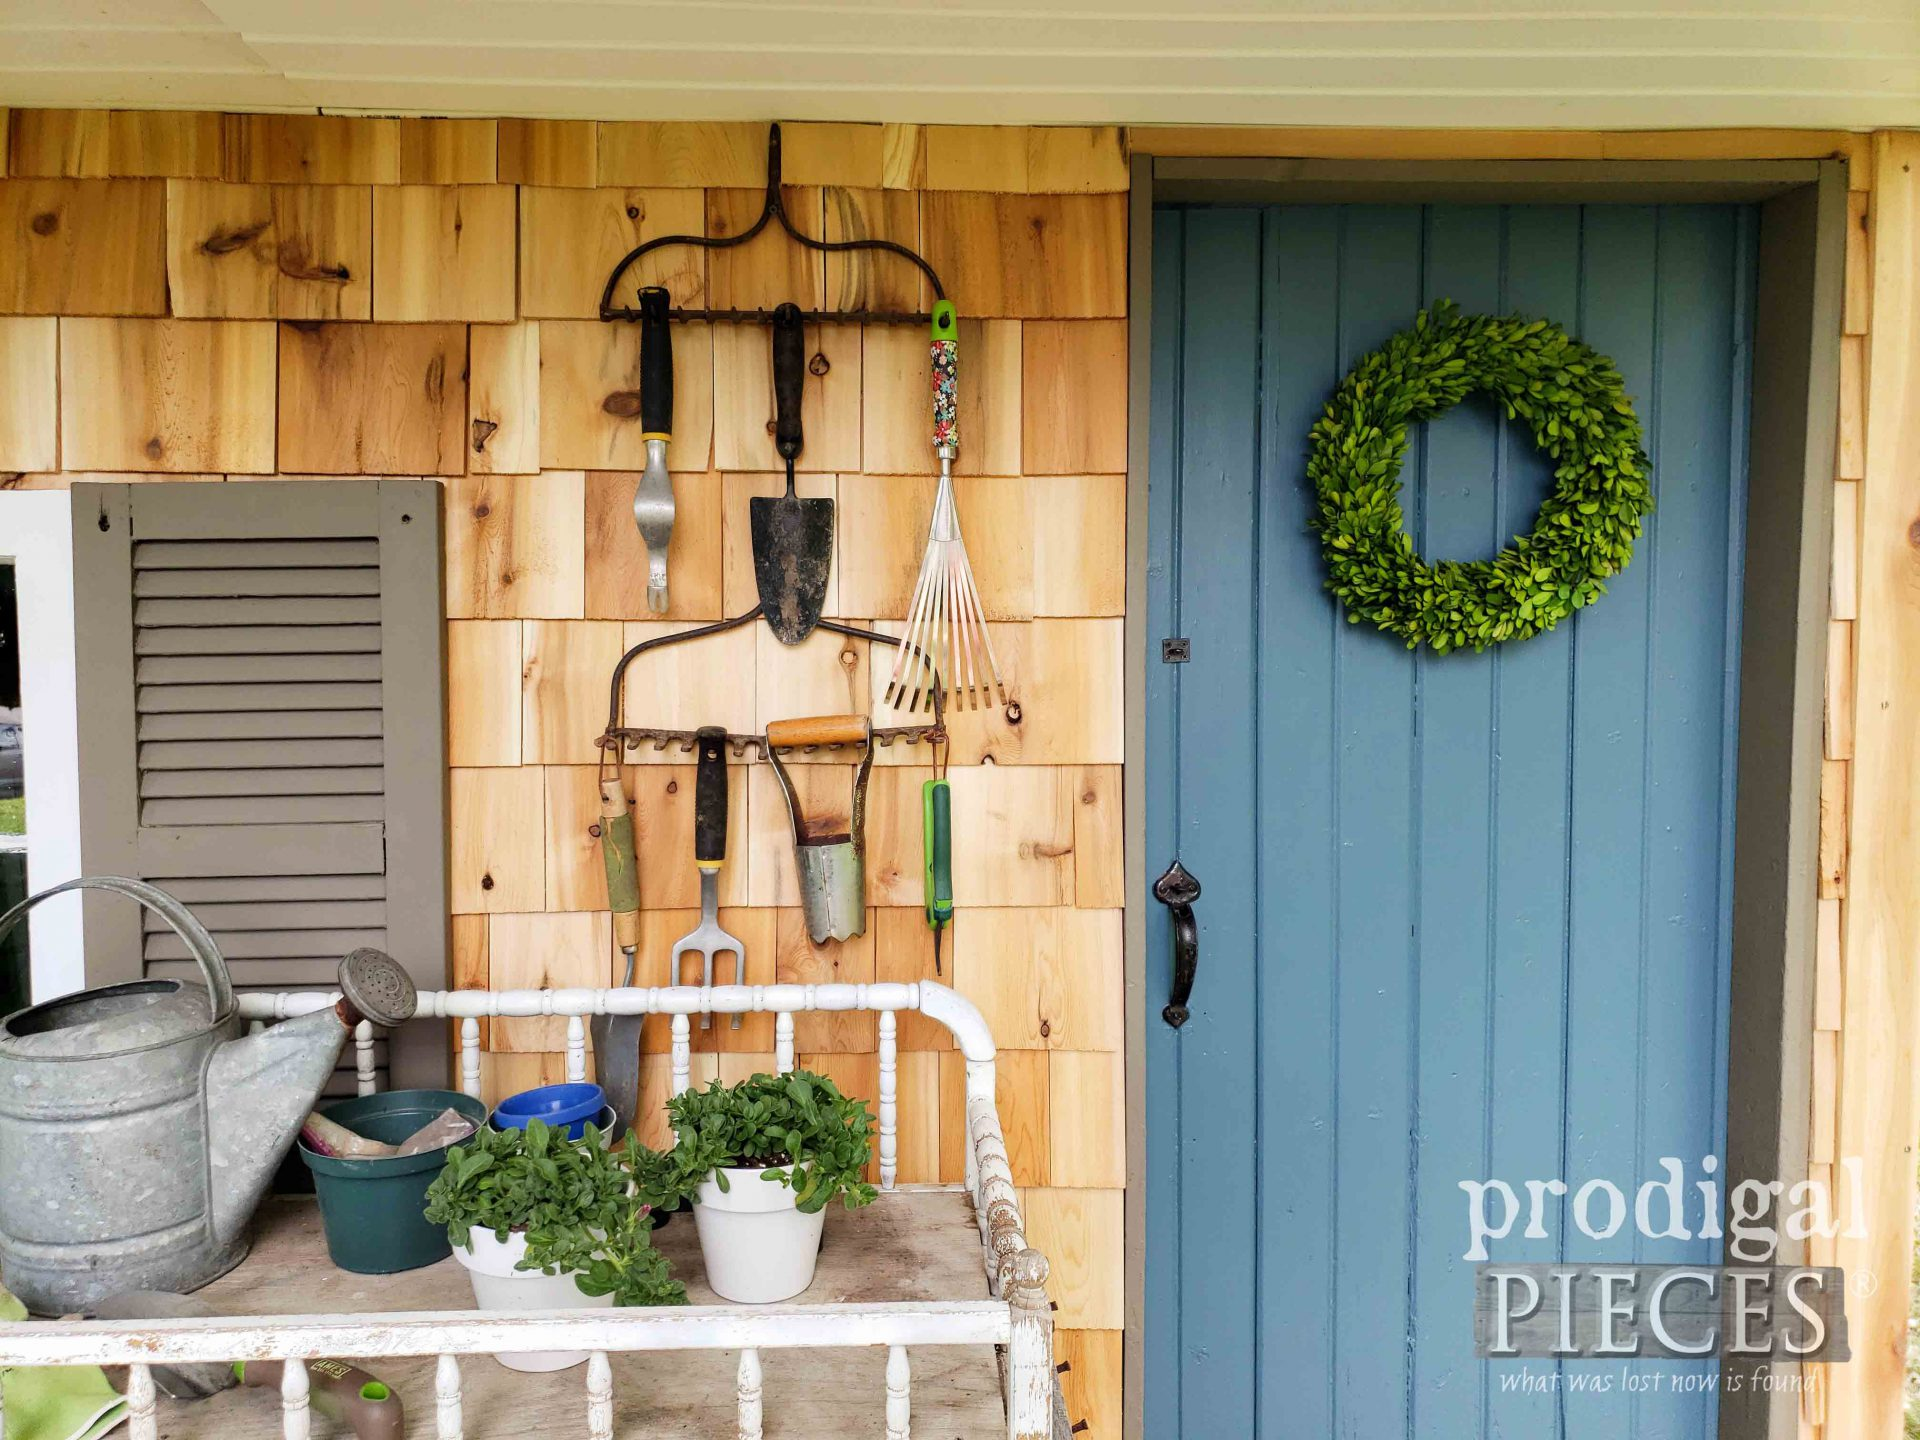 Blue Garden She Door by Prodigal Pieces | prodigalpieces.com #prodigalpieces #diy #garden